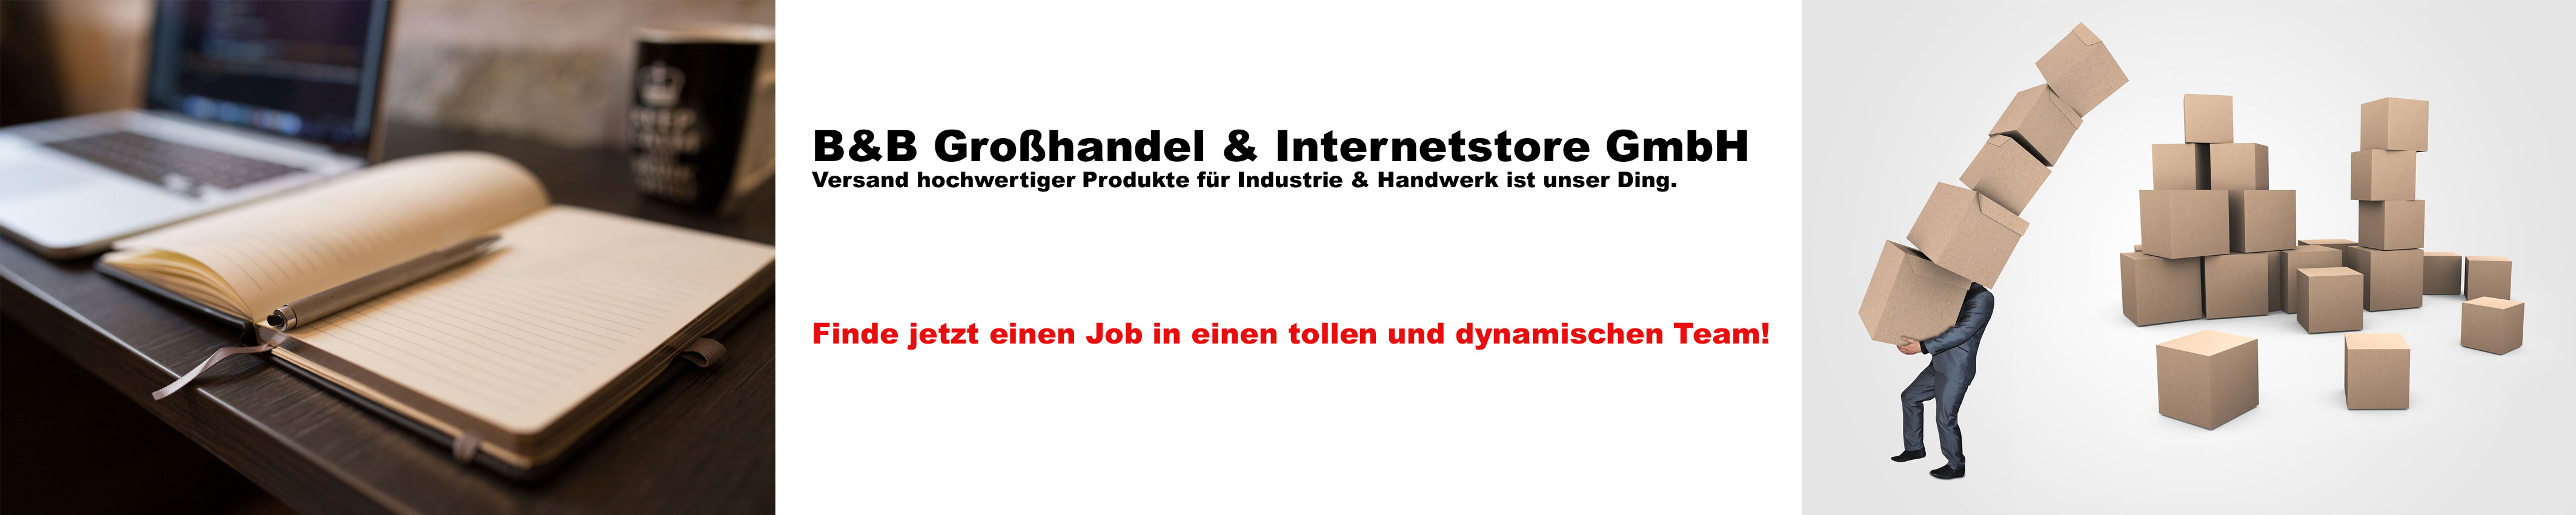 job-stellen-bundb-grosshand